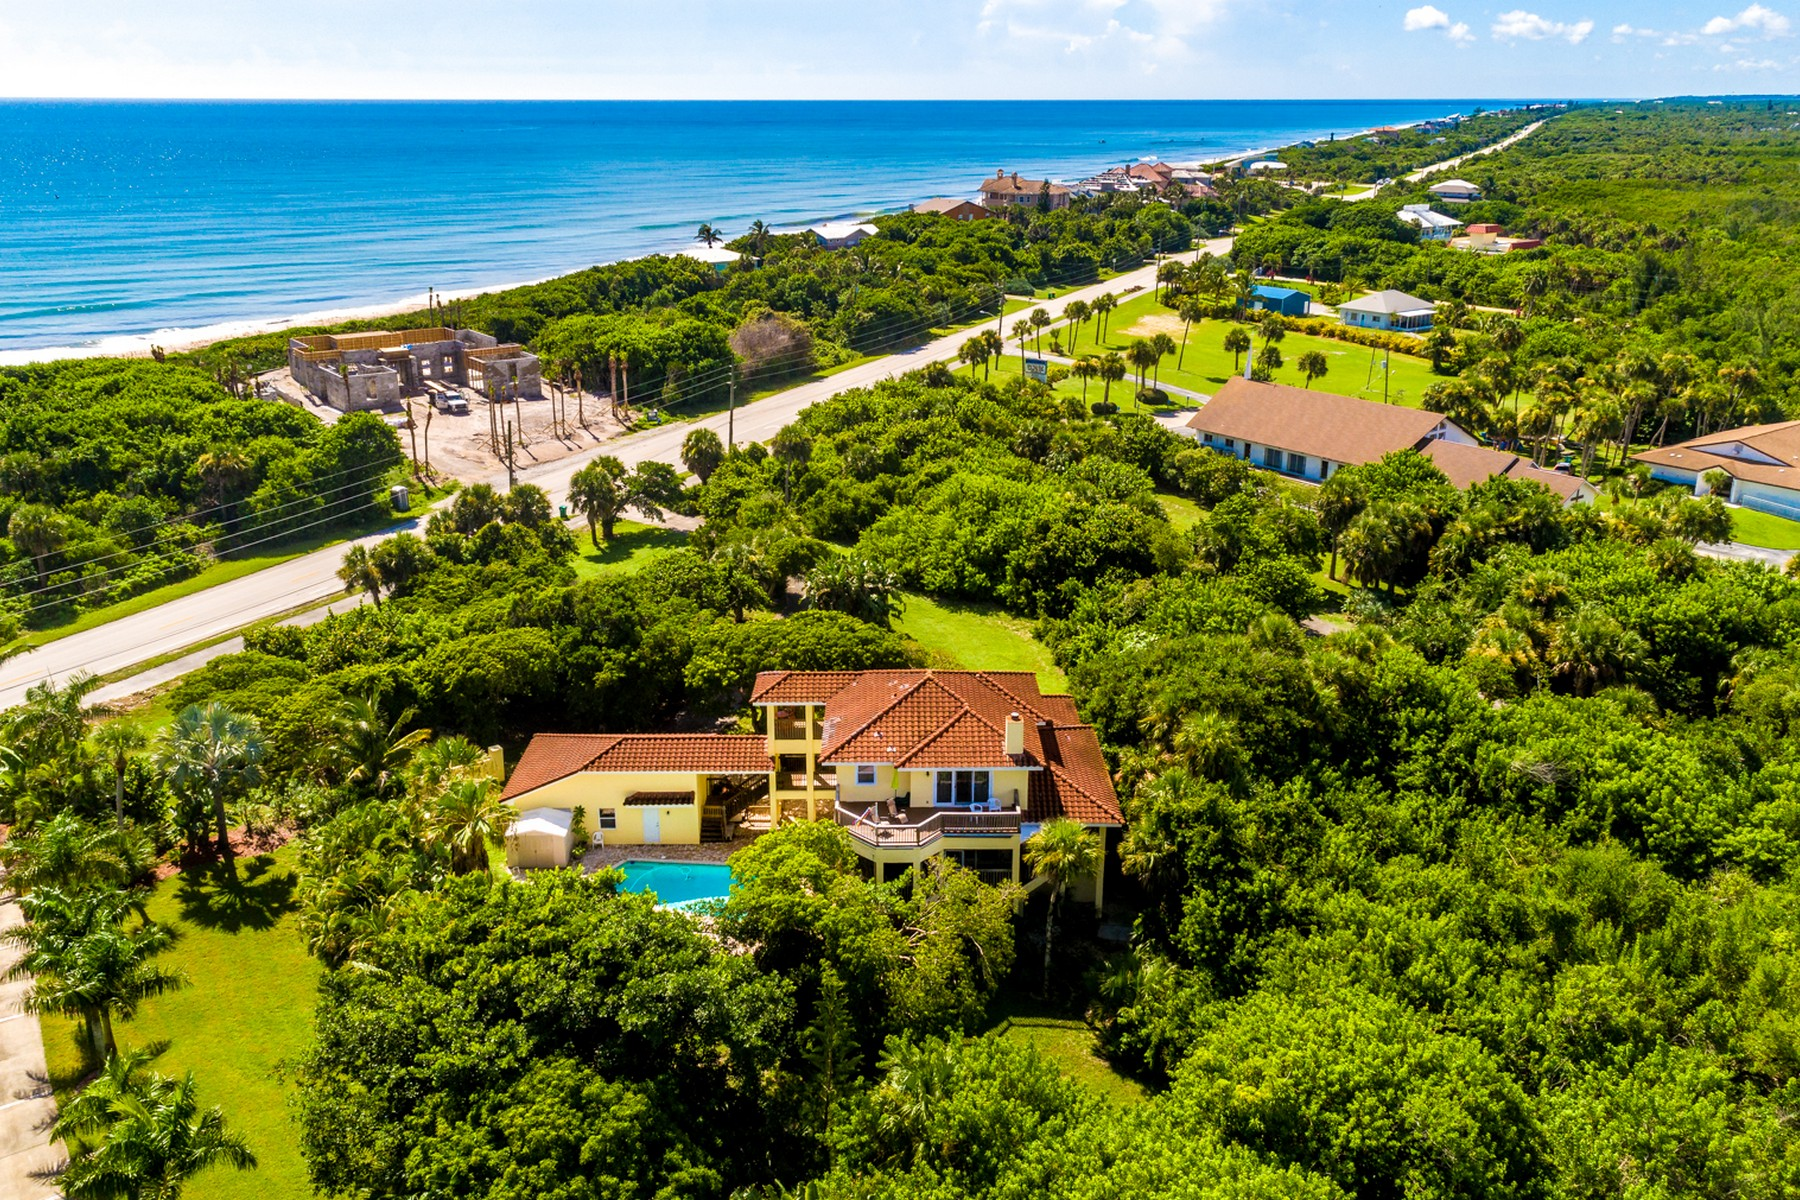 Single Family Homes for Sale at 3 1/2 Acre Riverfront Estate in Private, Nature Rich Setting 8210 S Highway A1A Melbourne Beach, Florida 32951 United States